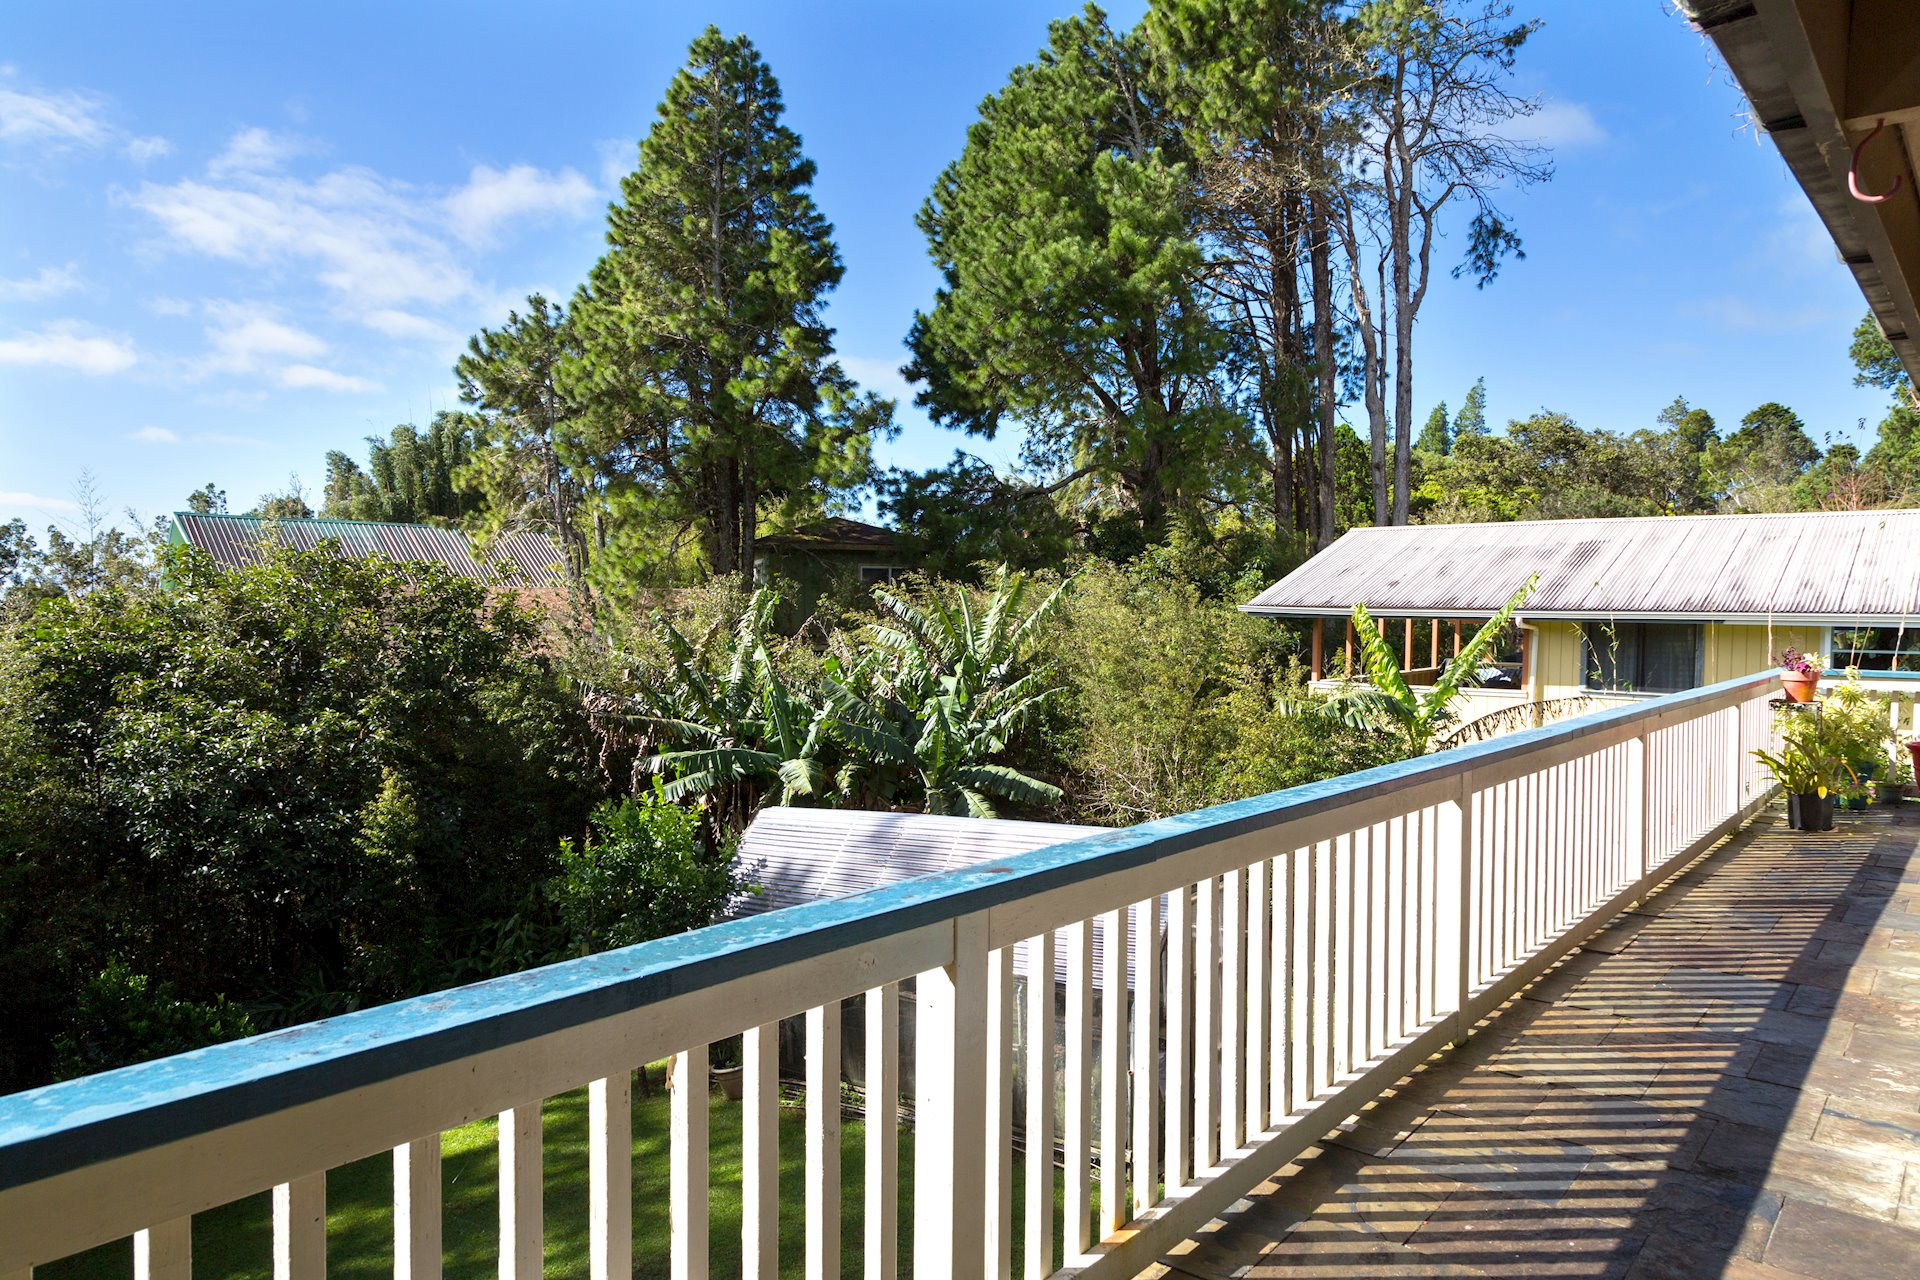 Upper lanai spans the entire width of the home